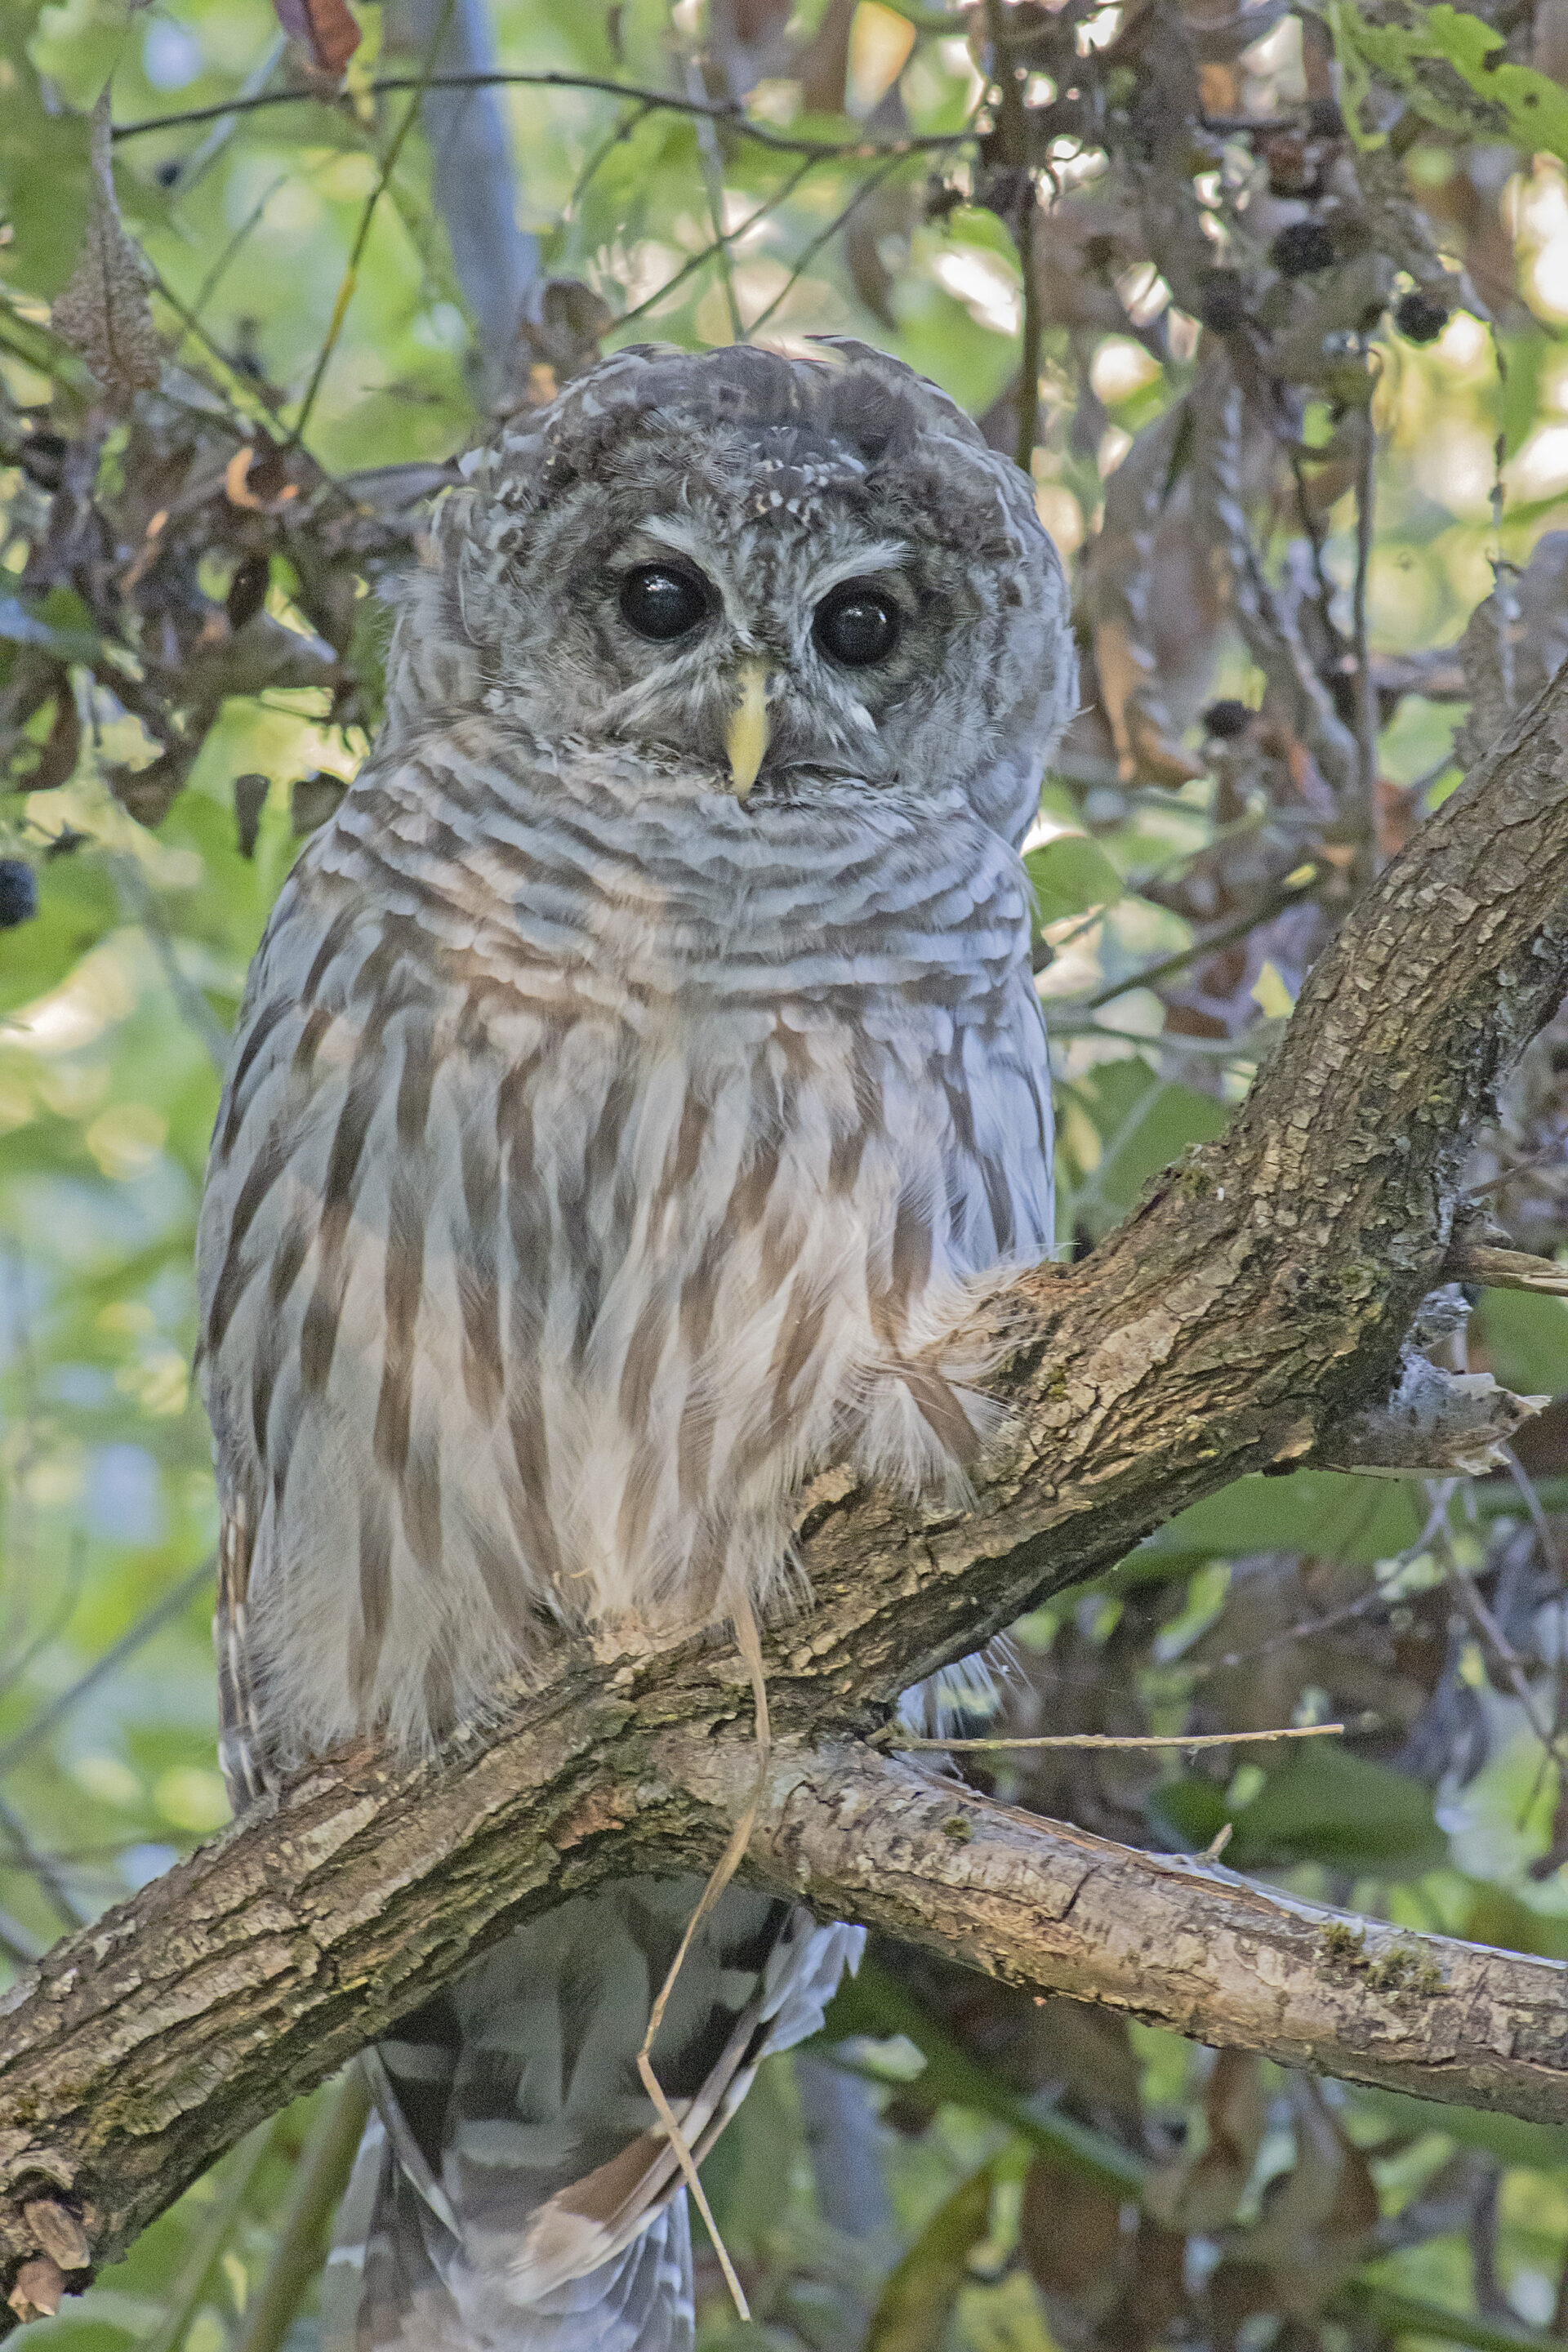 Barred Owl, August 23, 2021